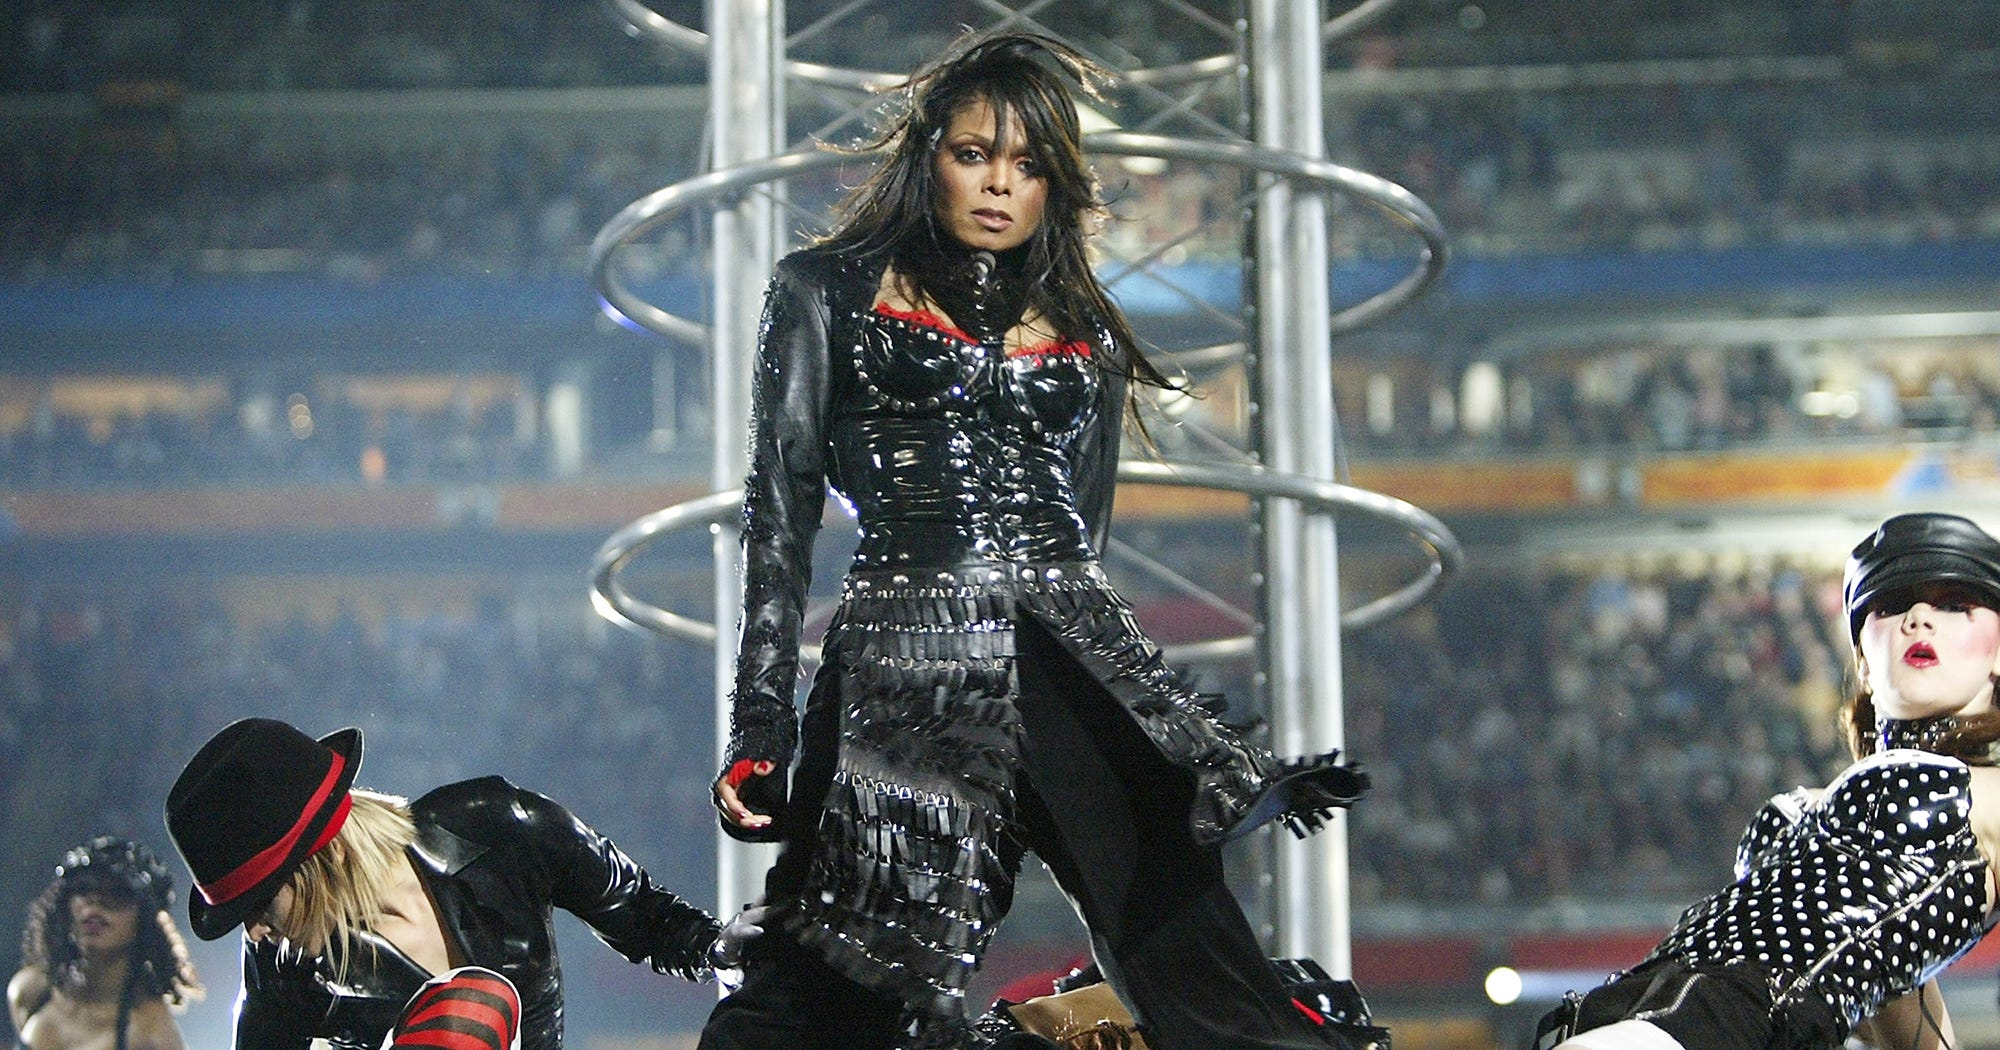 dac6bff0804 Janet Jackson Super Bowl Show Mishap In The Me Too Era